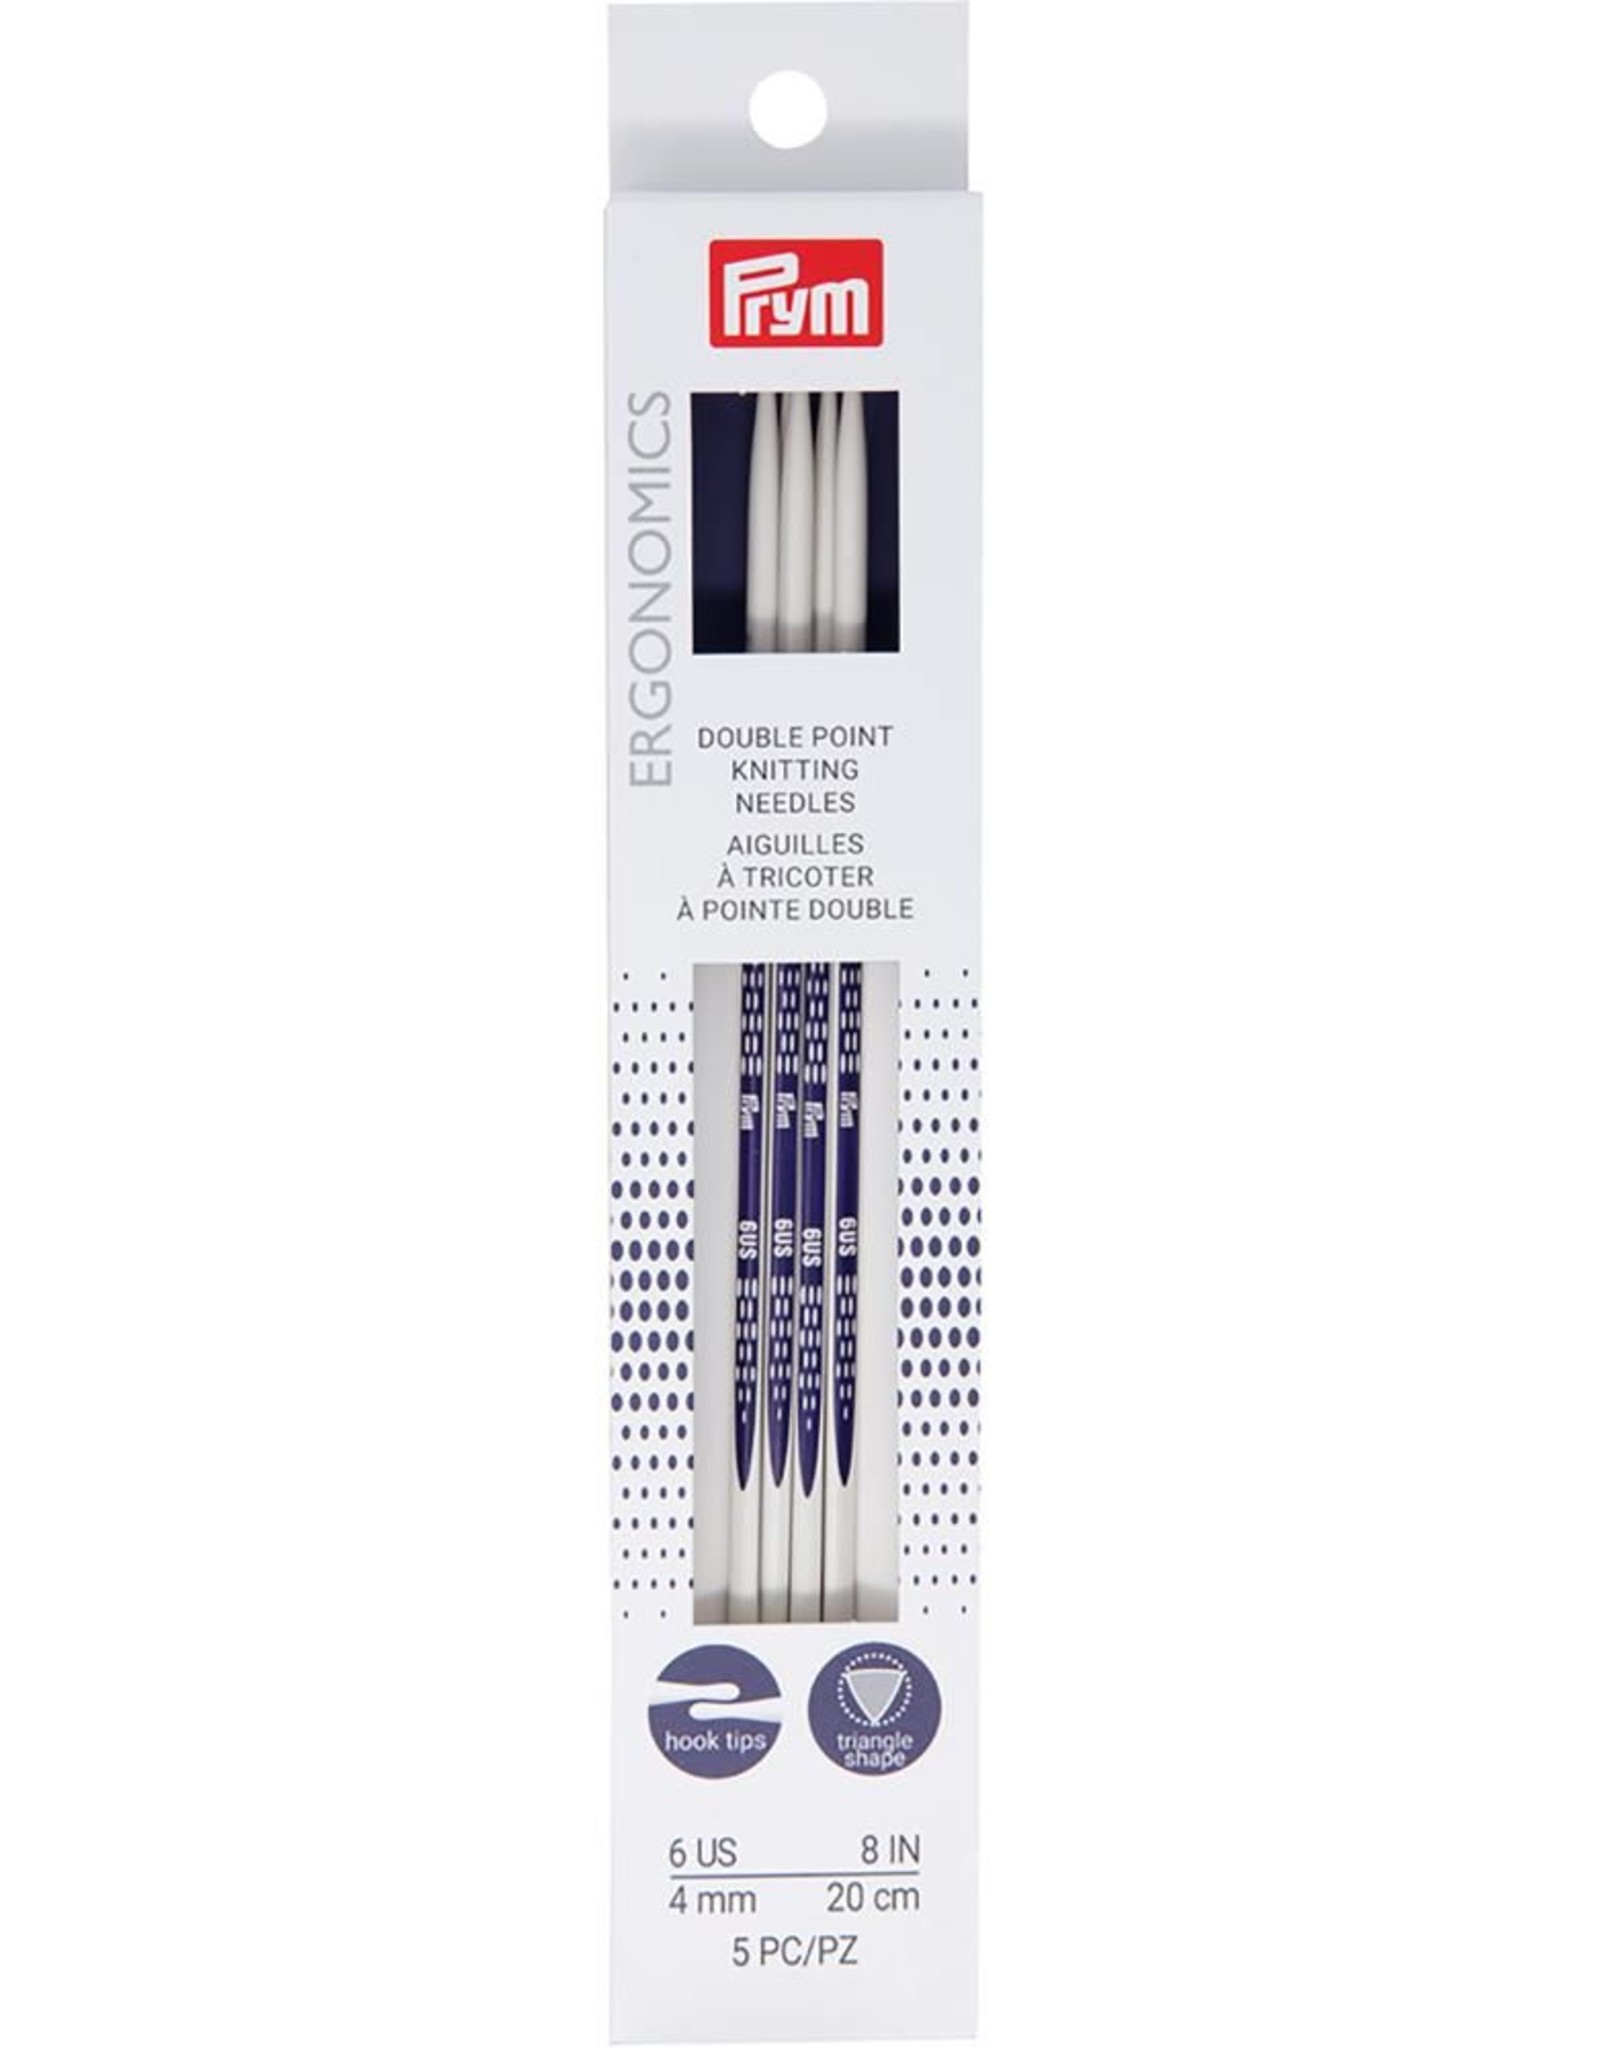 Prym Pyrm Ergonomic Double pointed Knitting needles 8""